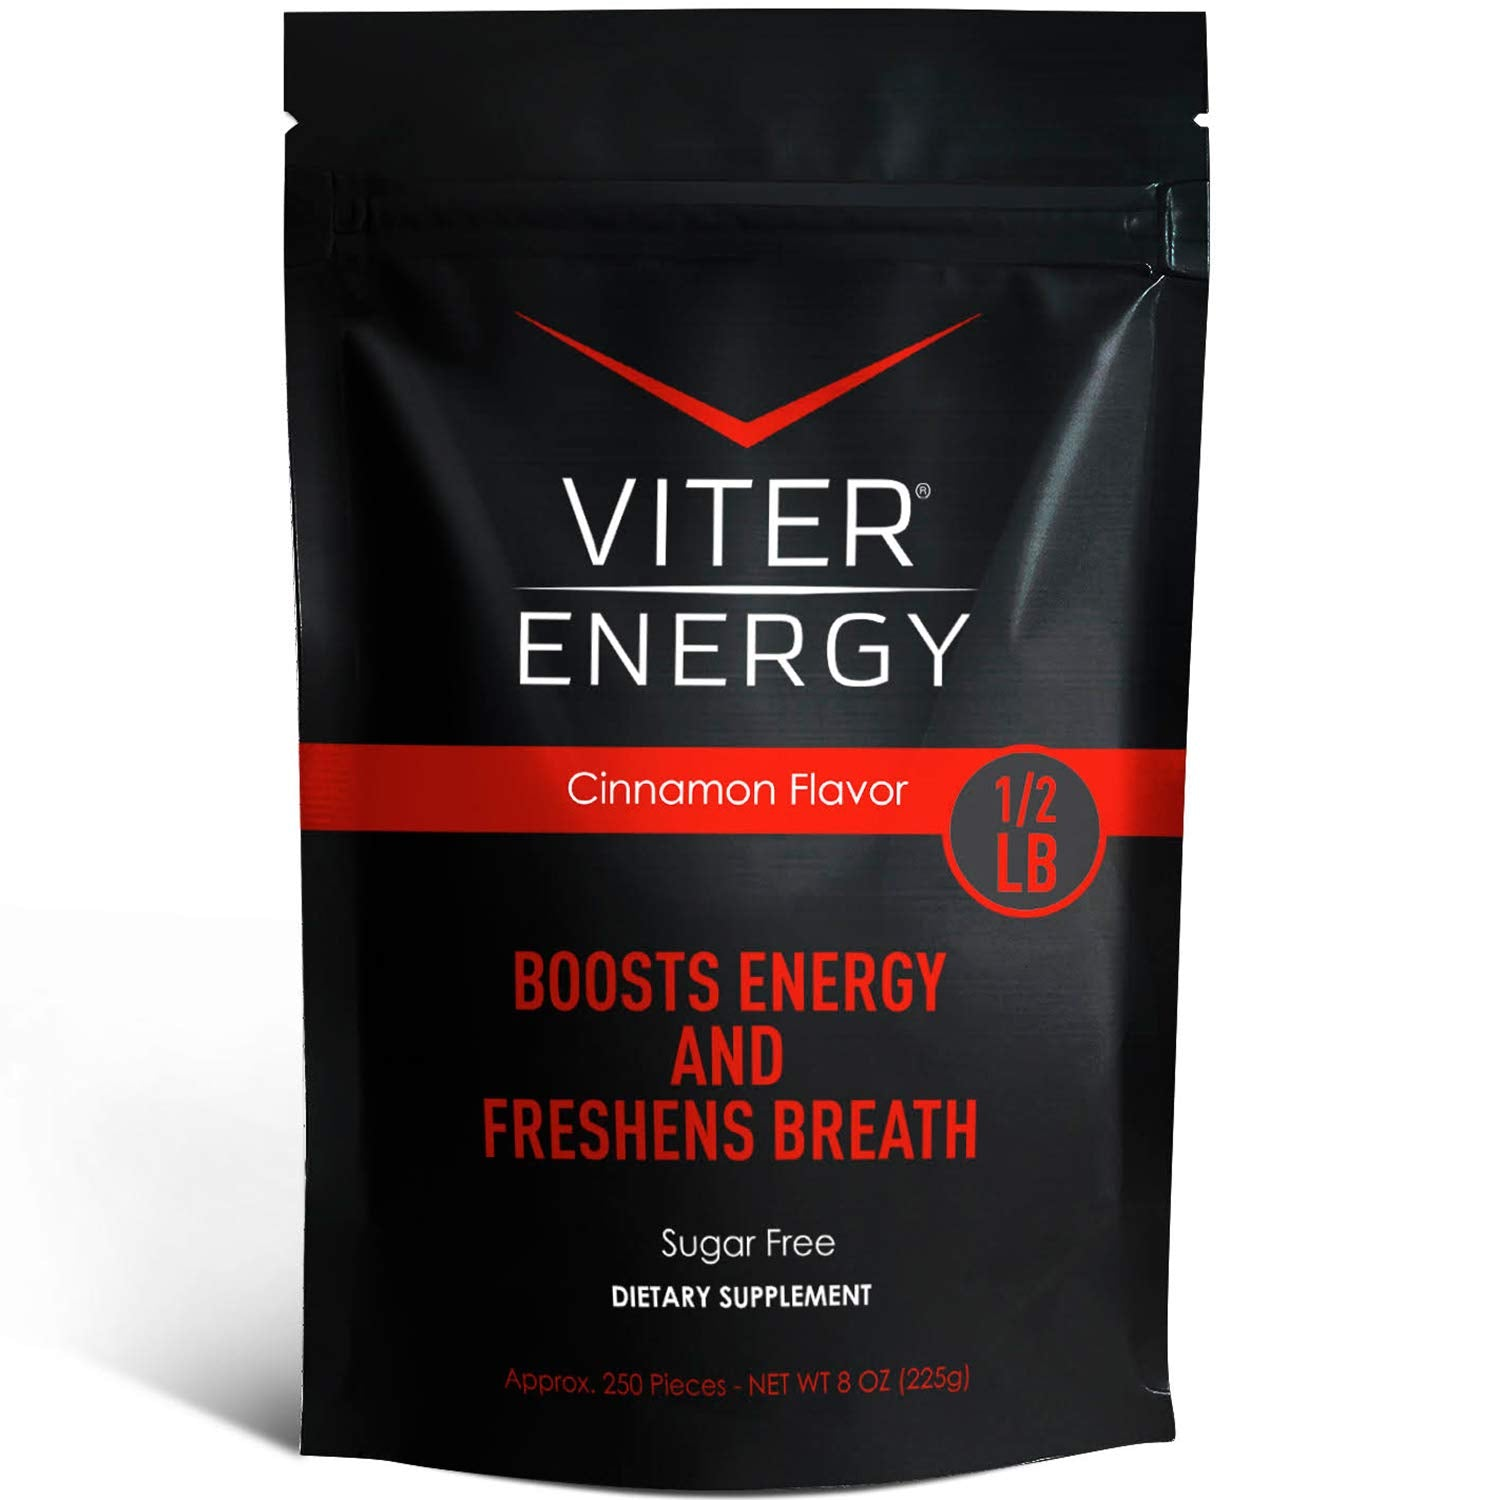 Viter Energy Caffeinated Mints - 40mg Caffeine, B Vitamins, Sugar Free Vegan Breath Mint. Powerful Energizing Boost. 2 Energy Mints Replace 1 Coffee, Gum, Chews, Gummies, Candy (Cinnamon Bulk Bag)